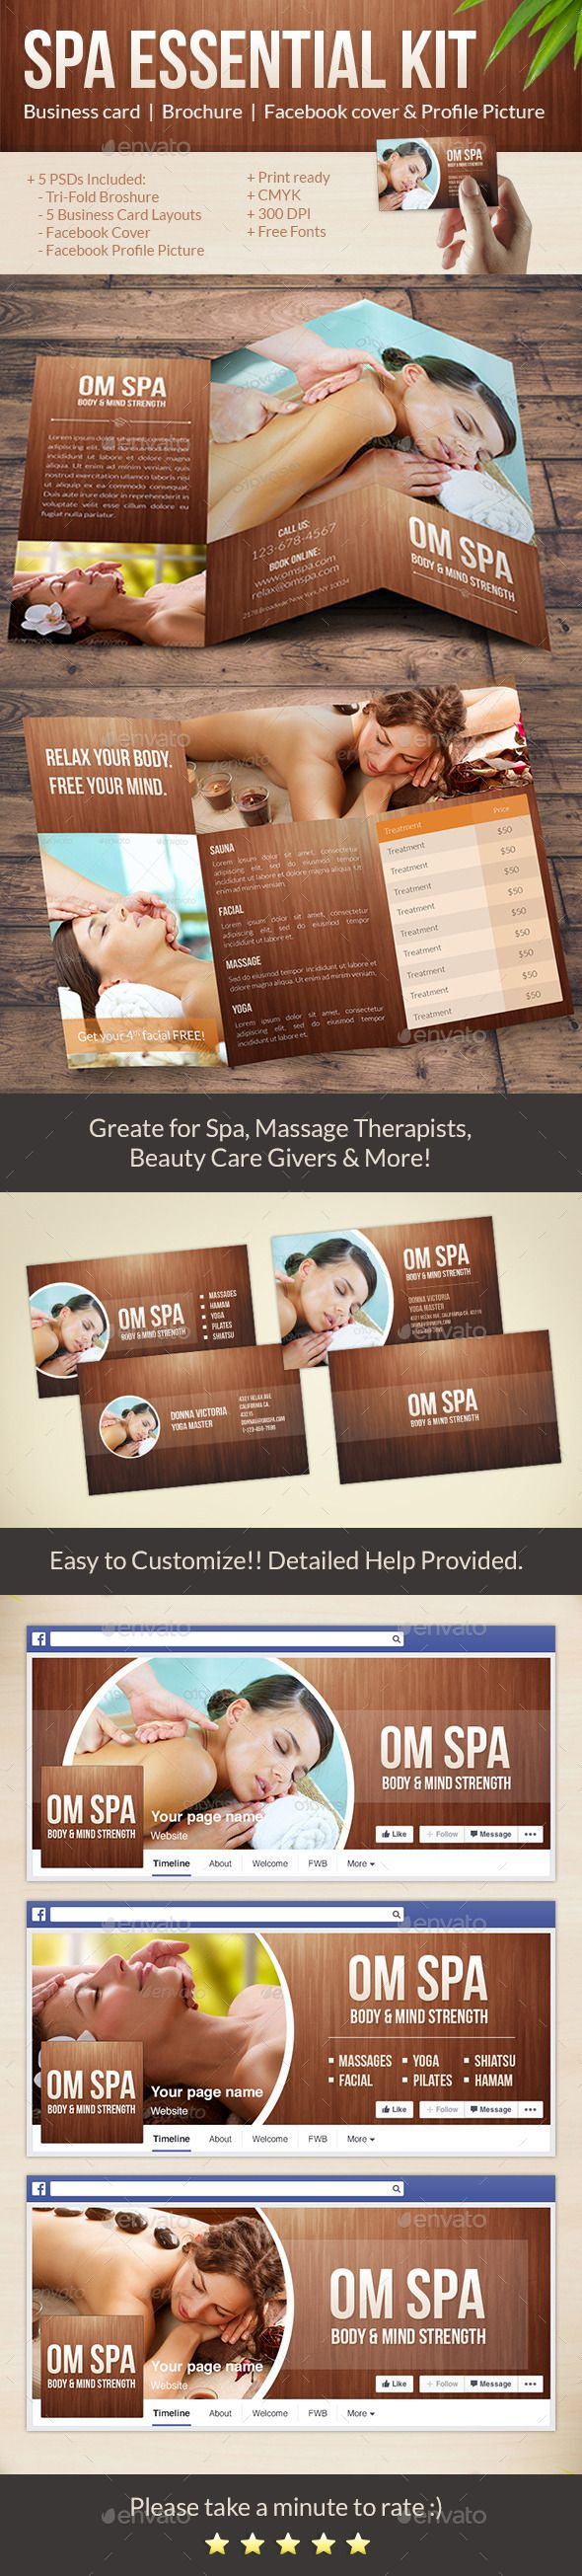 Beauty & Spa Pack: Tri-Fold Brochure, Business Cards, Facebook Cover ...